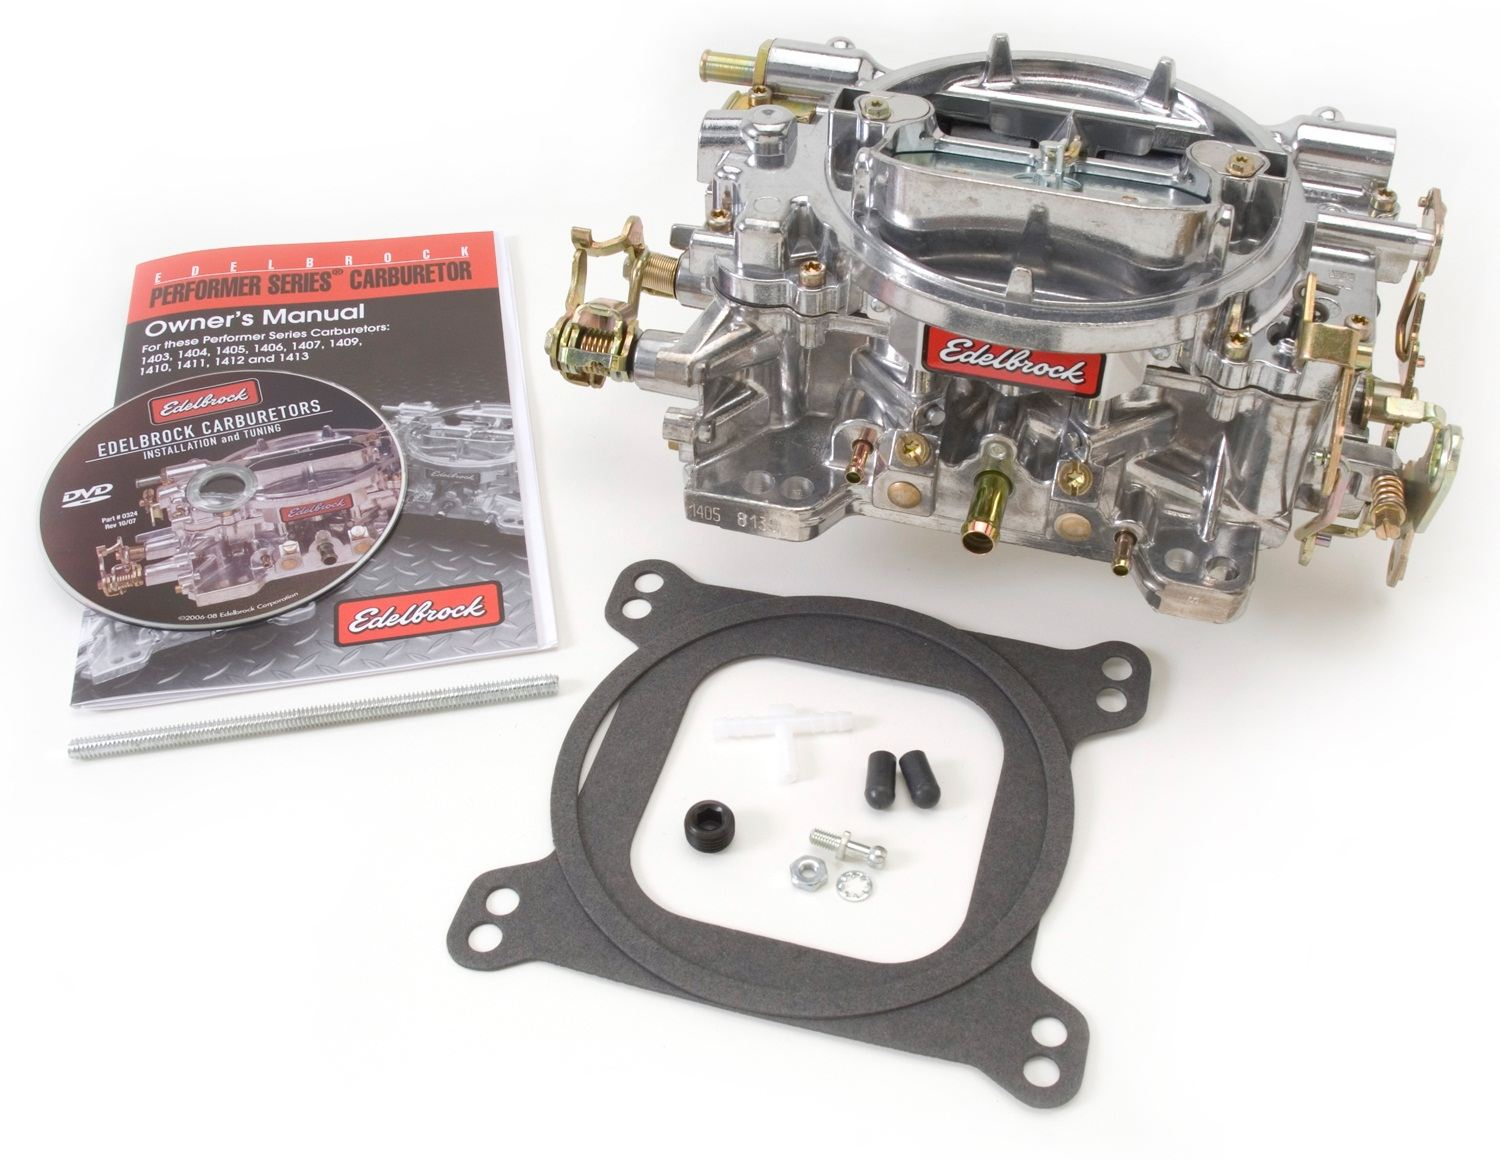 EDELBROCK - Reconditioned Performer Series Carburetor - EDB 9907